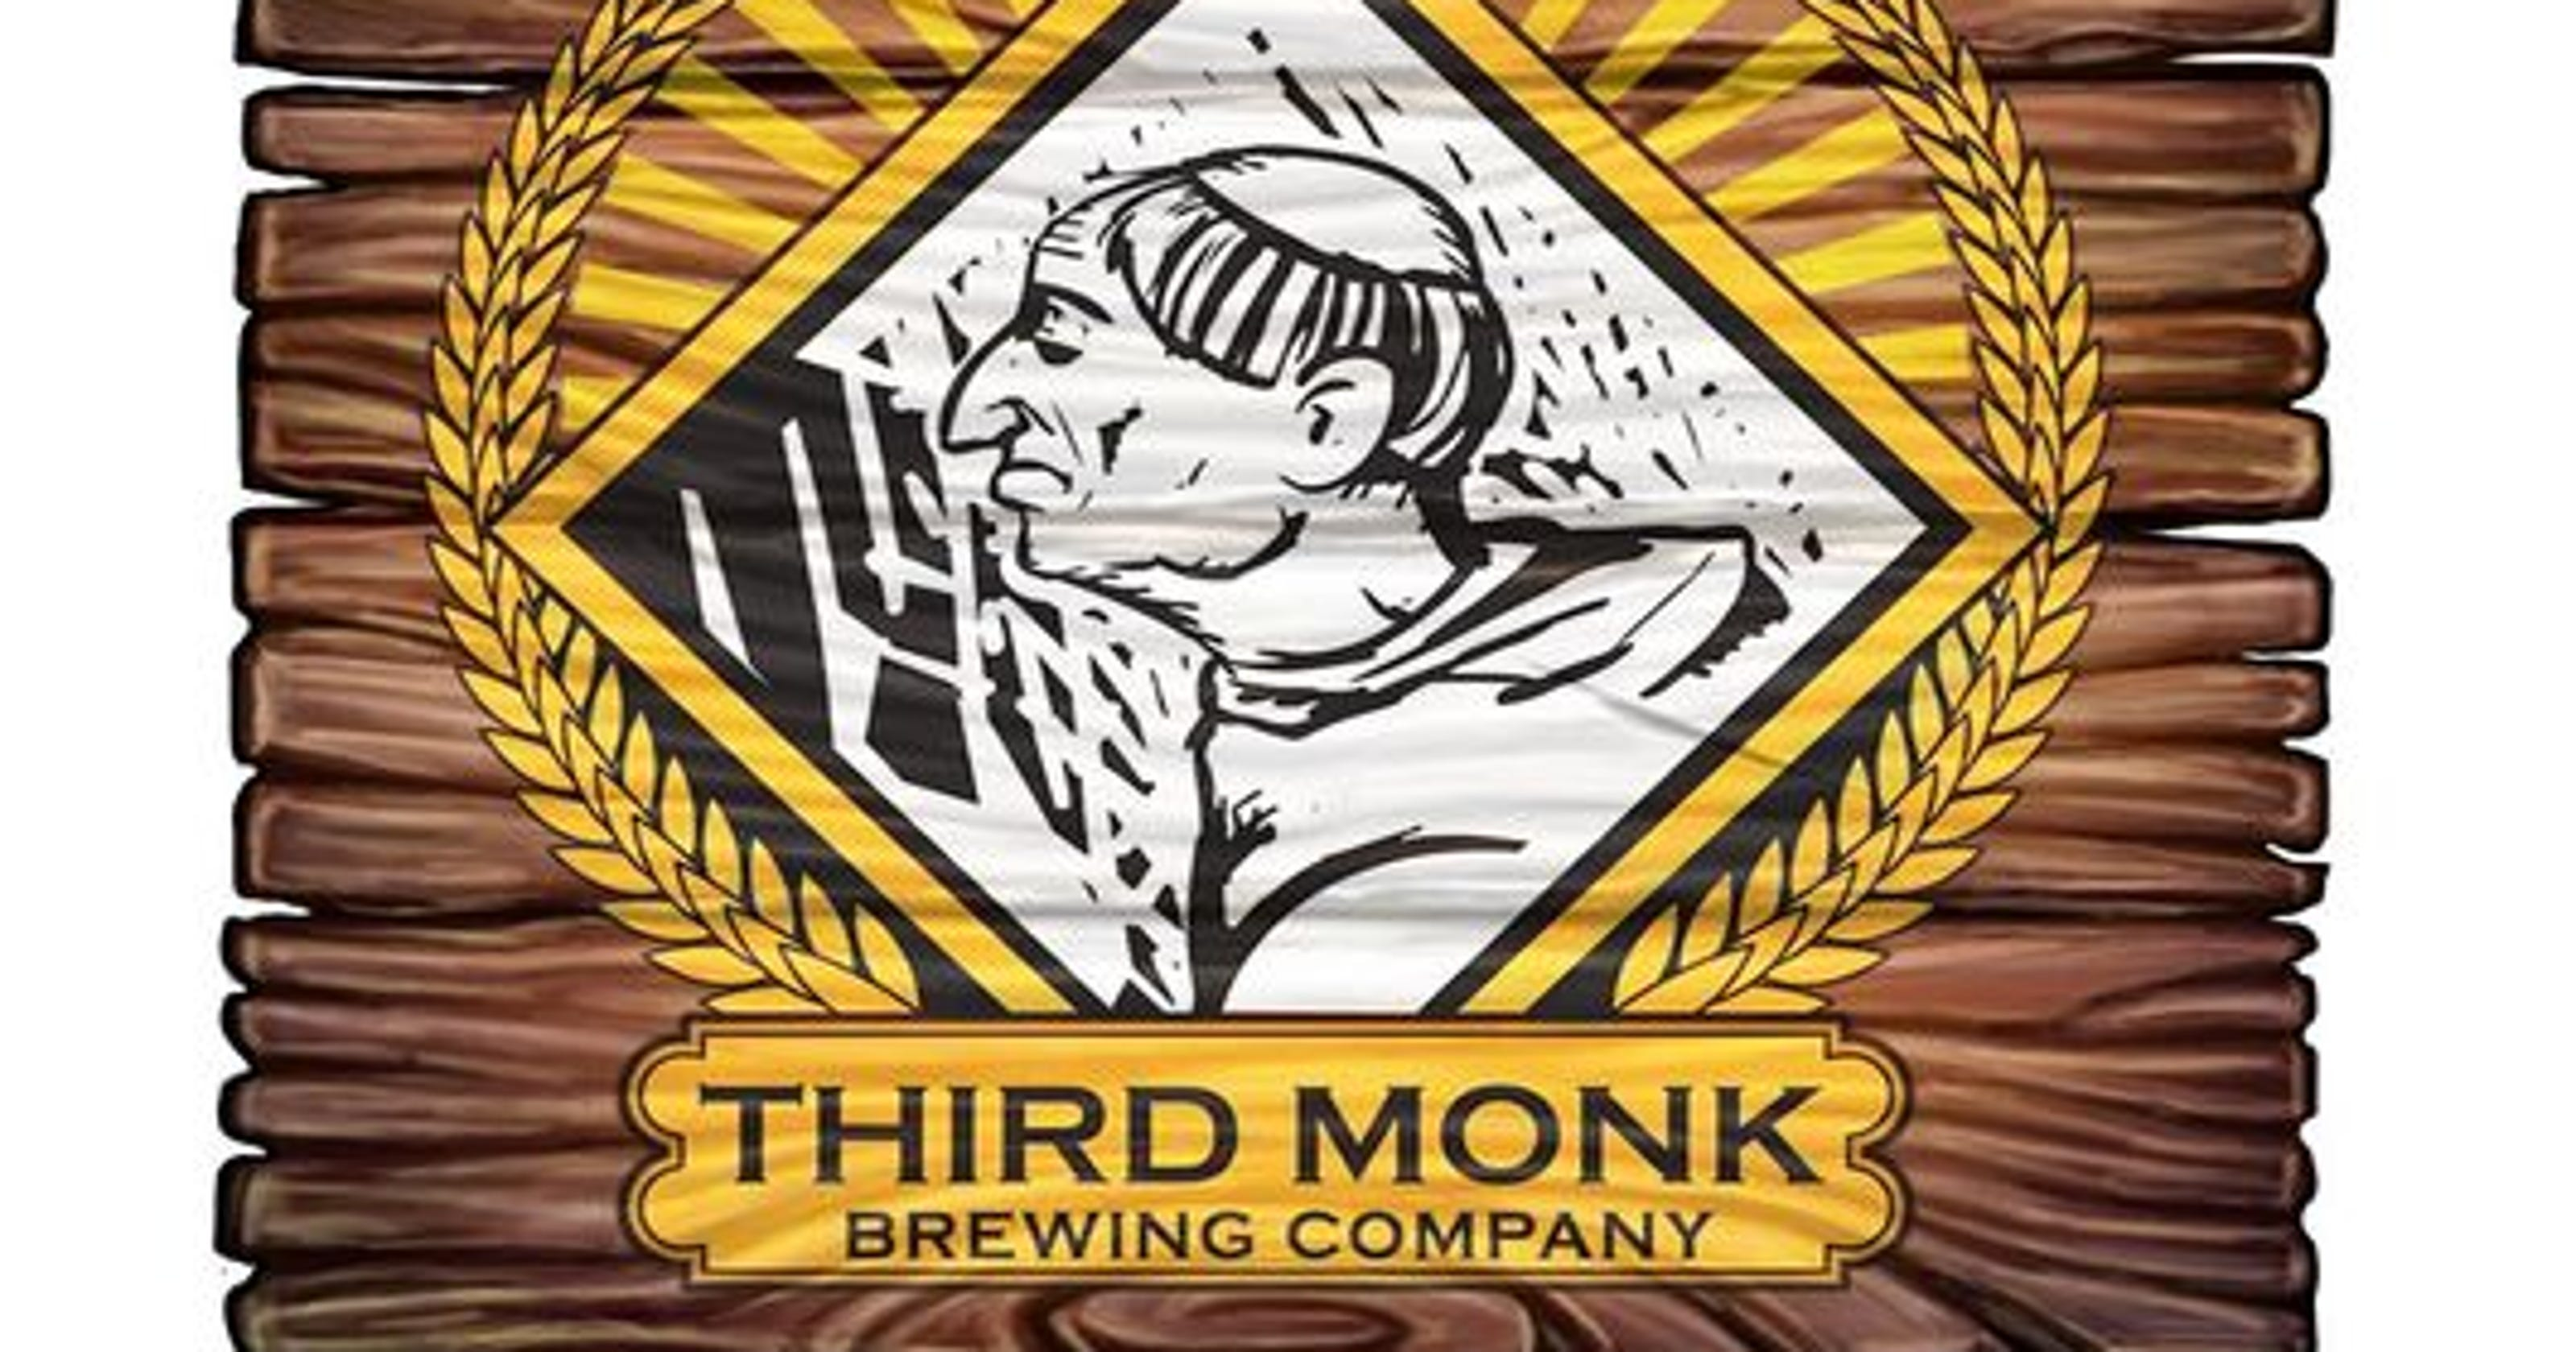 Third Monk Brewing Company opens in South Lyon